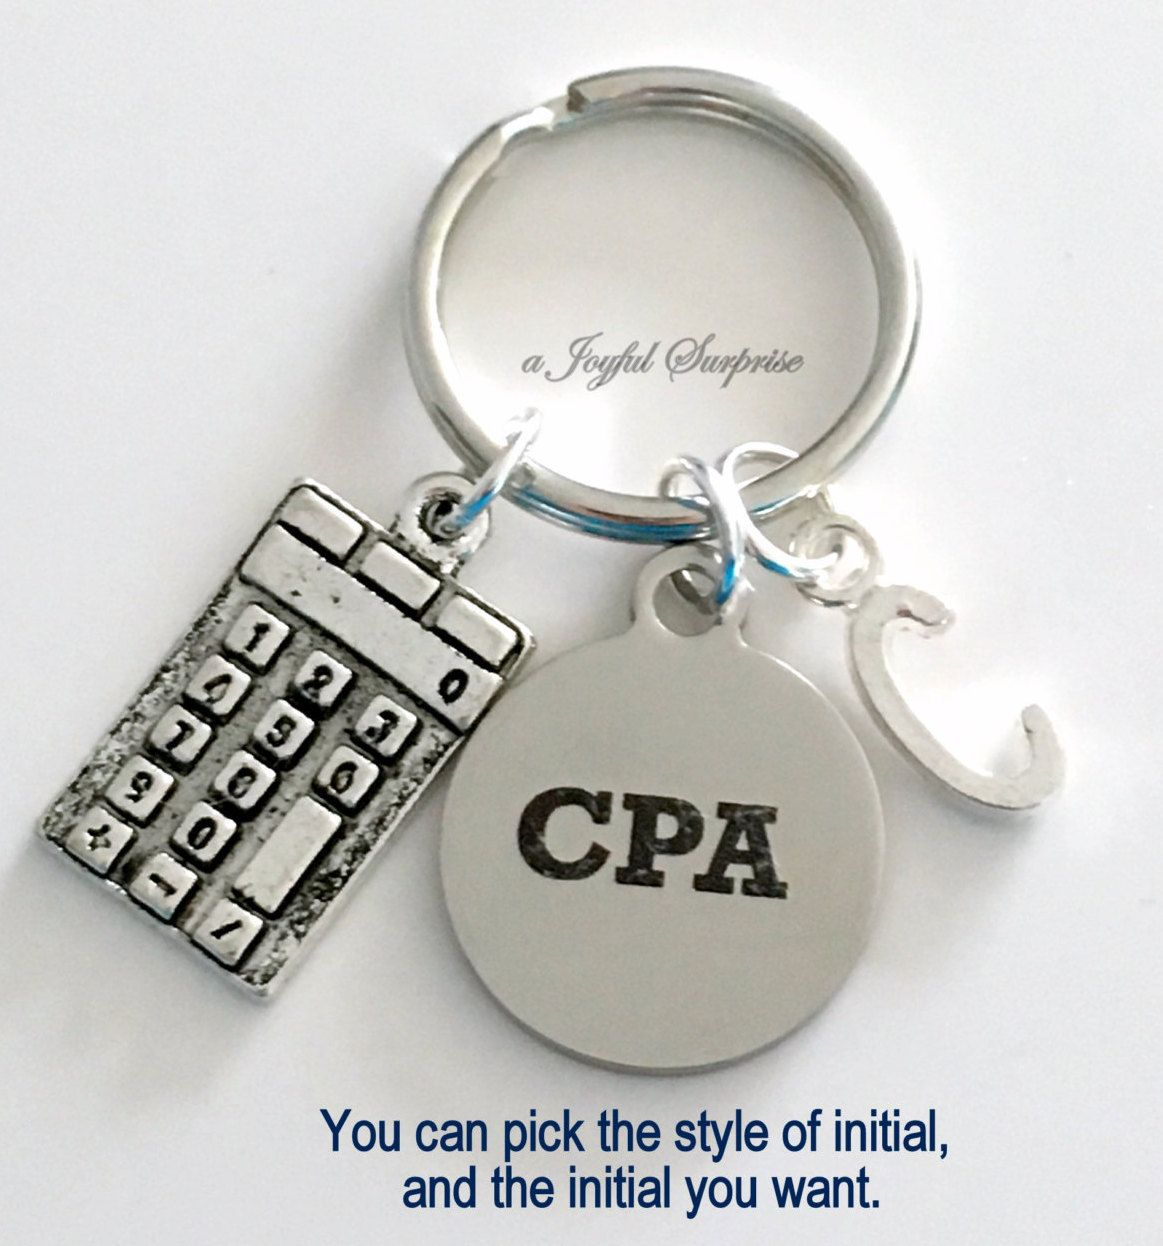 Chartered Accountant Cpa Gift For Cpa Key Chain Chartered Professional Accountant Present